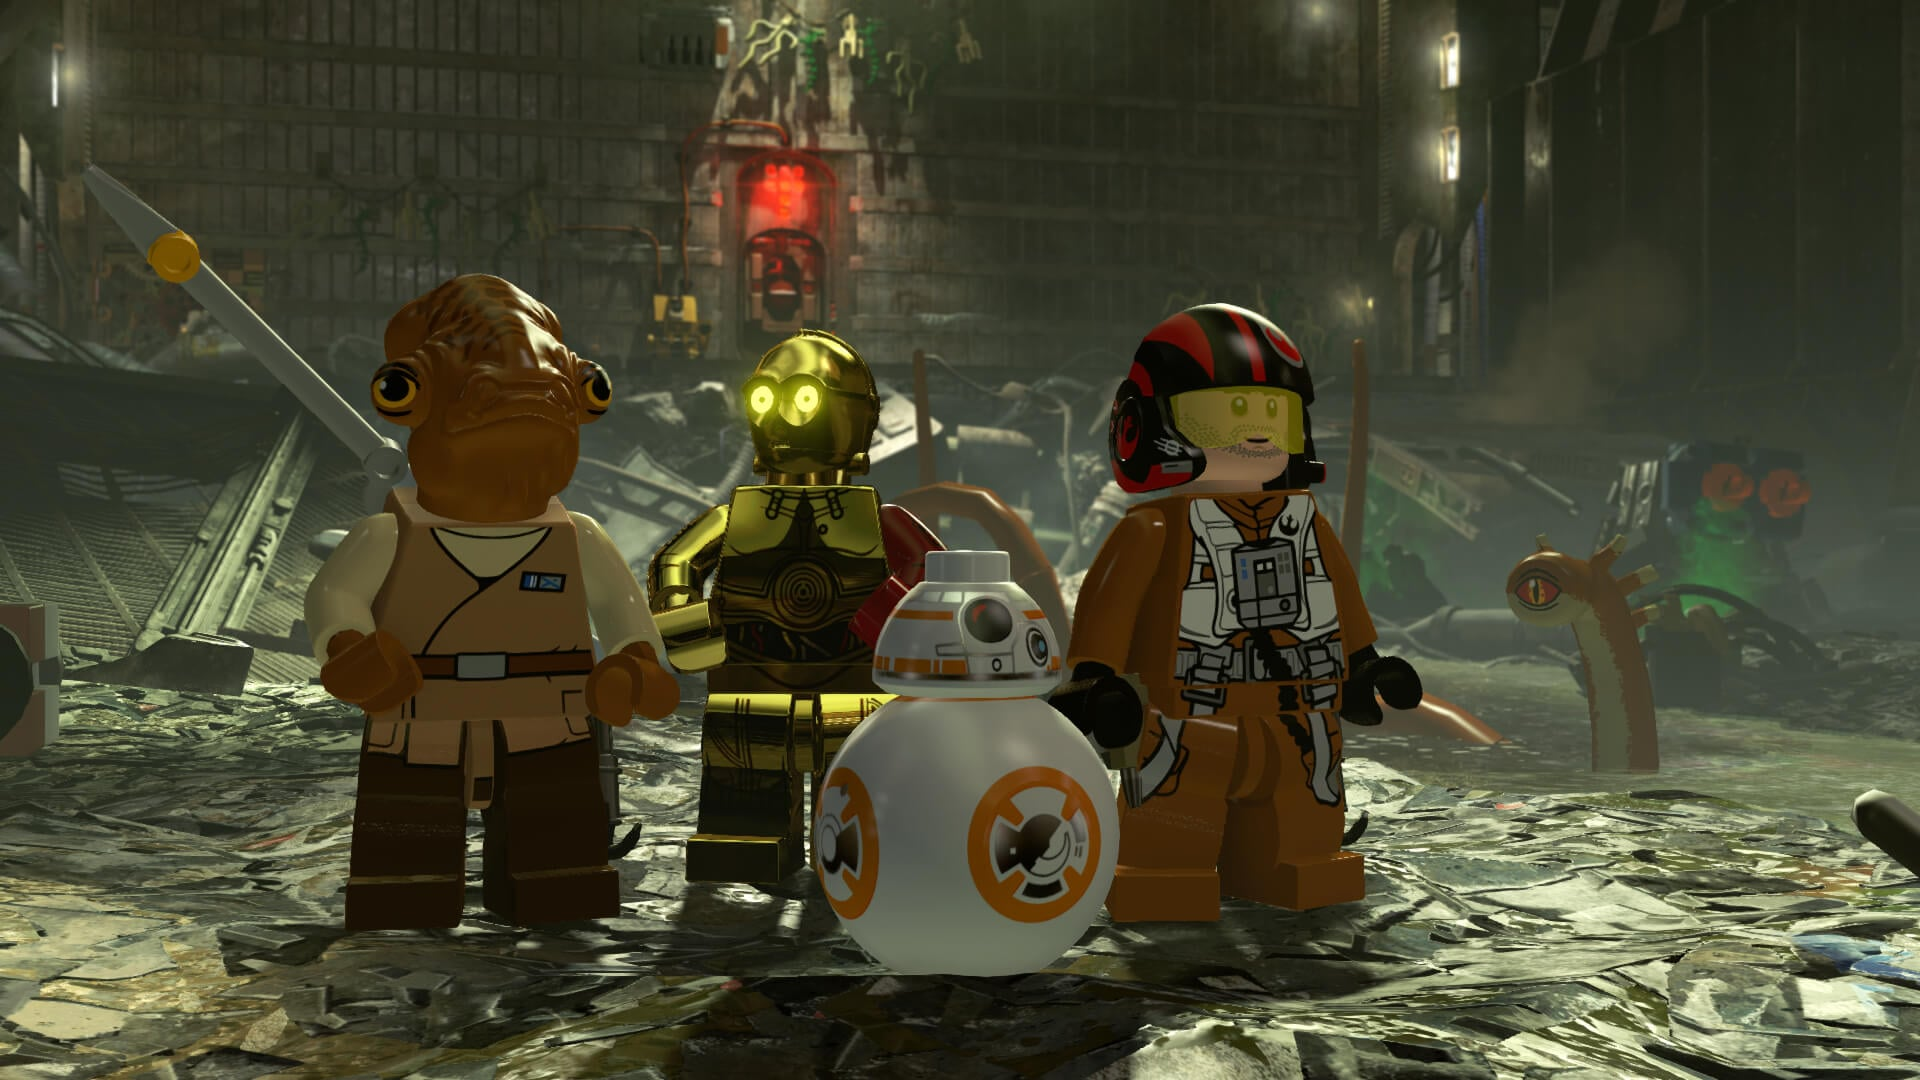 Get Ready To Unleash The Force With Lego Star Wars The Force Awakens Screens